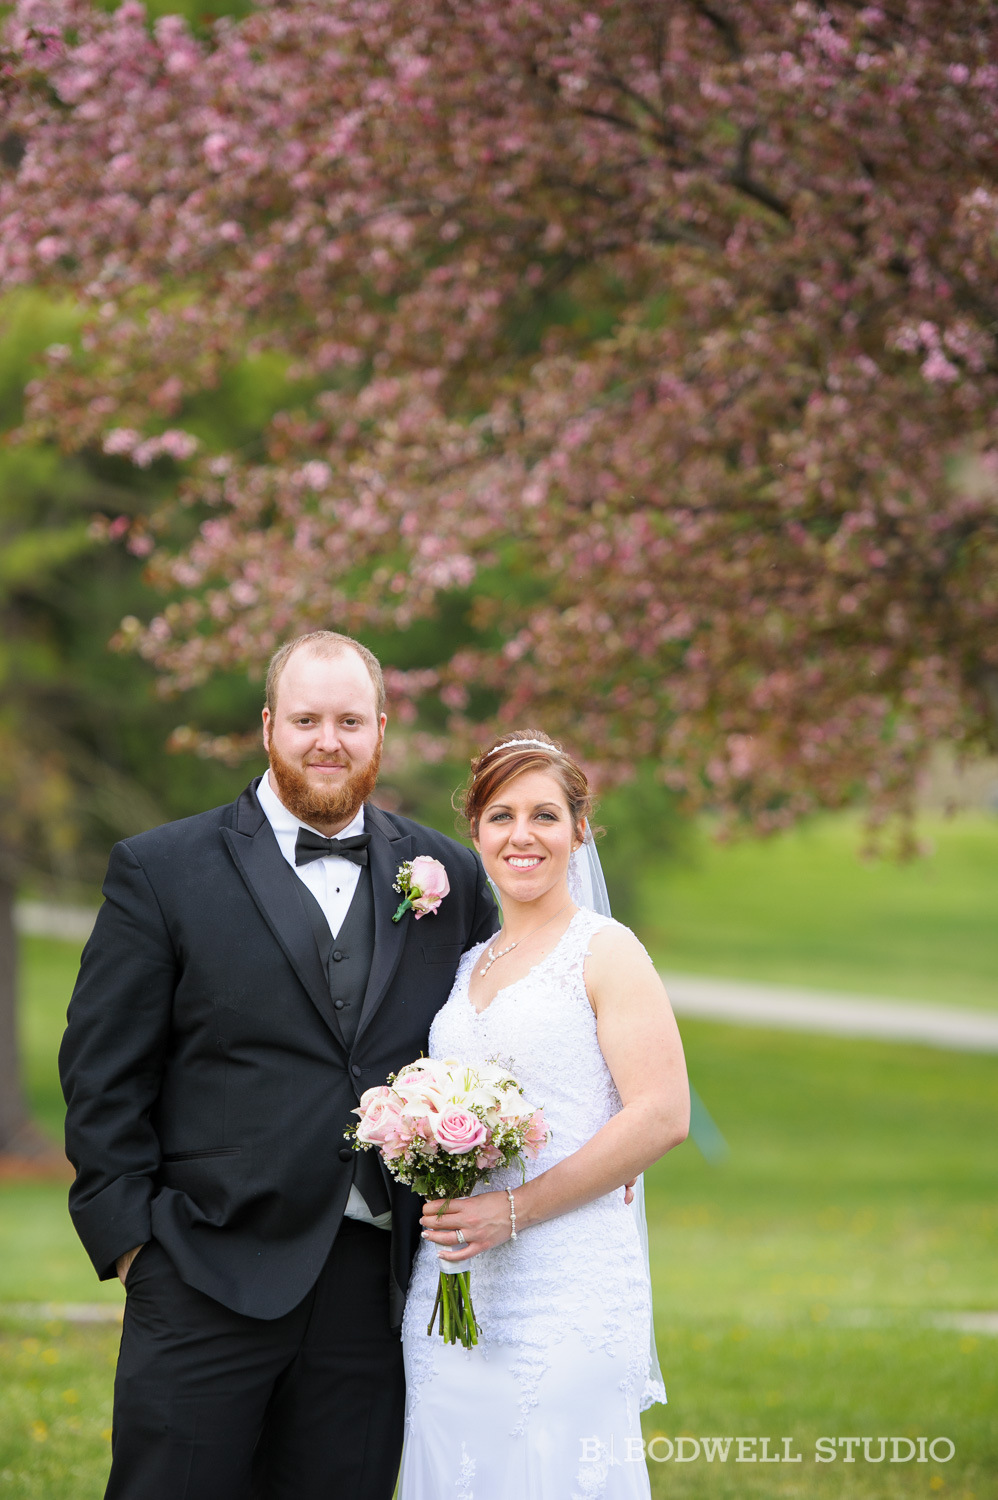 Grogg_Wedding_Blog_022.jpg